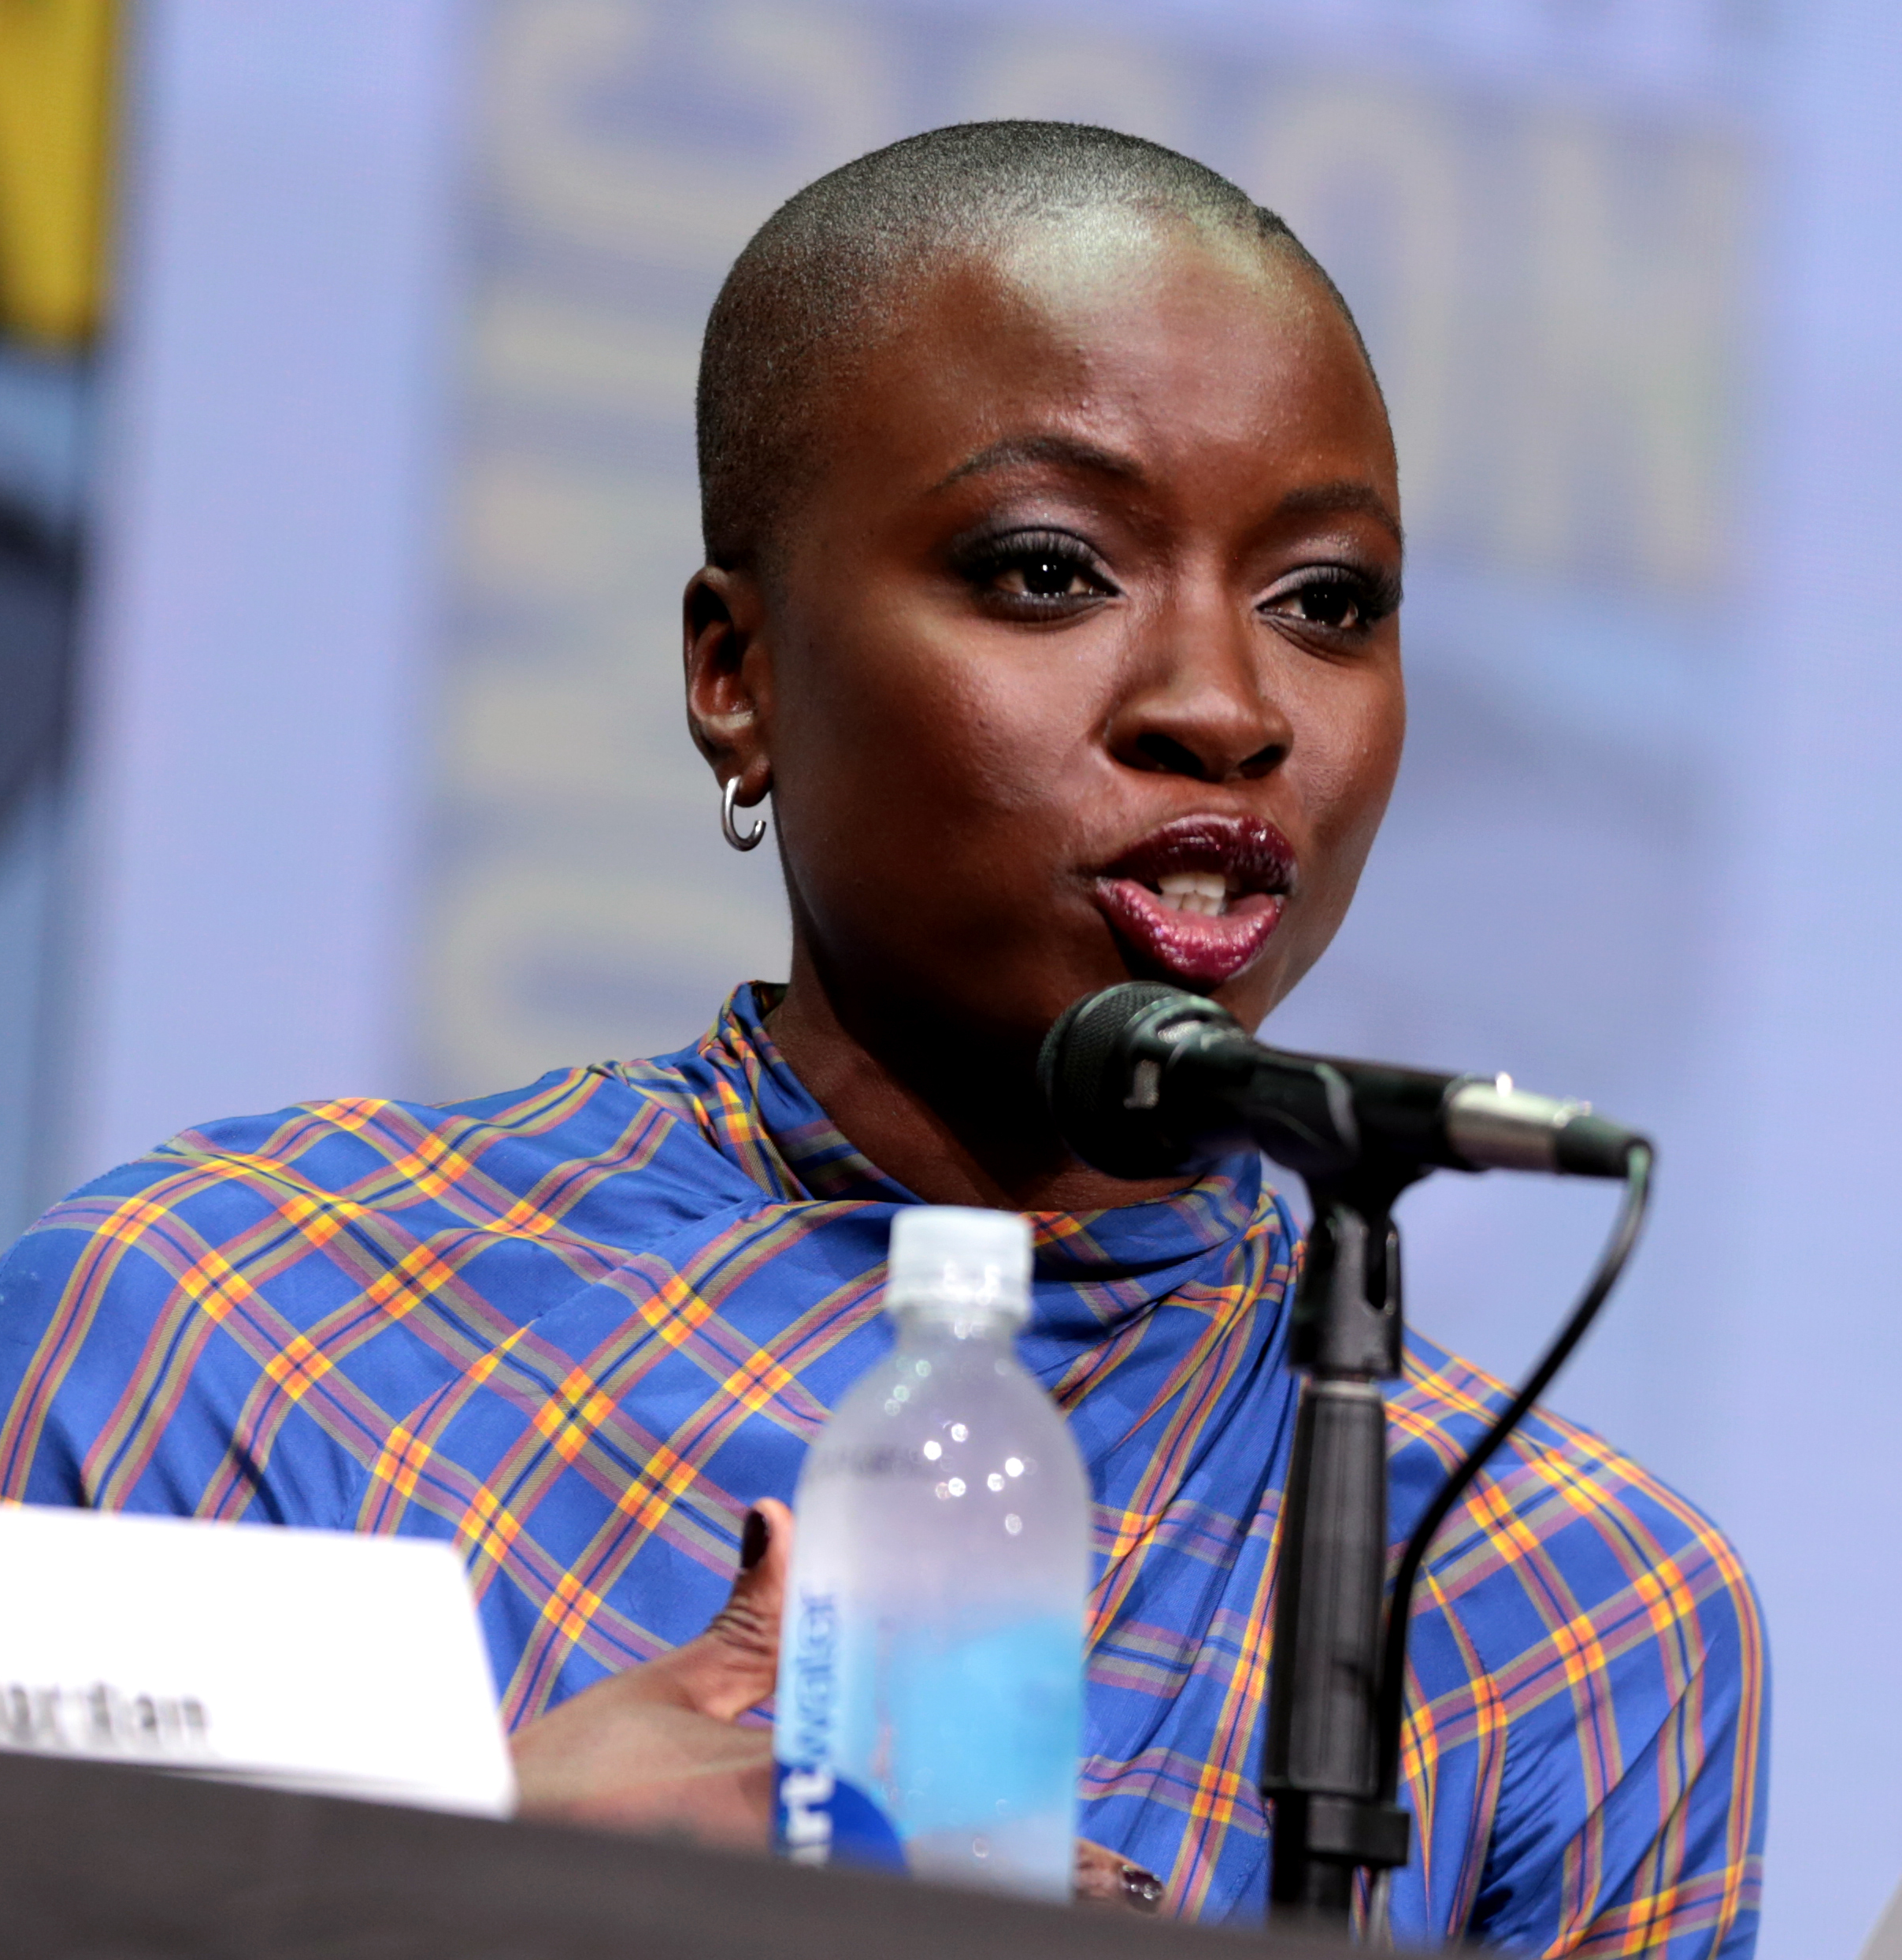 Gurira at the 2017 [[San Diego Comic-Con]]